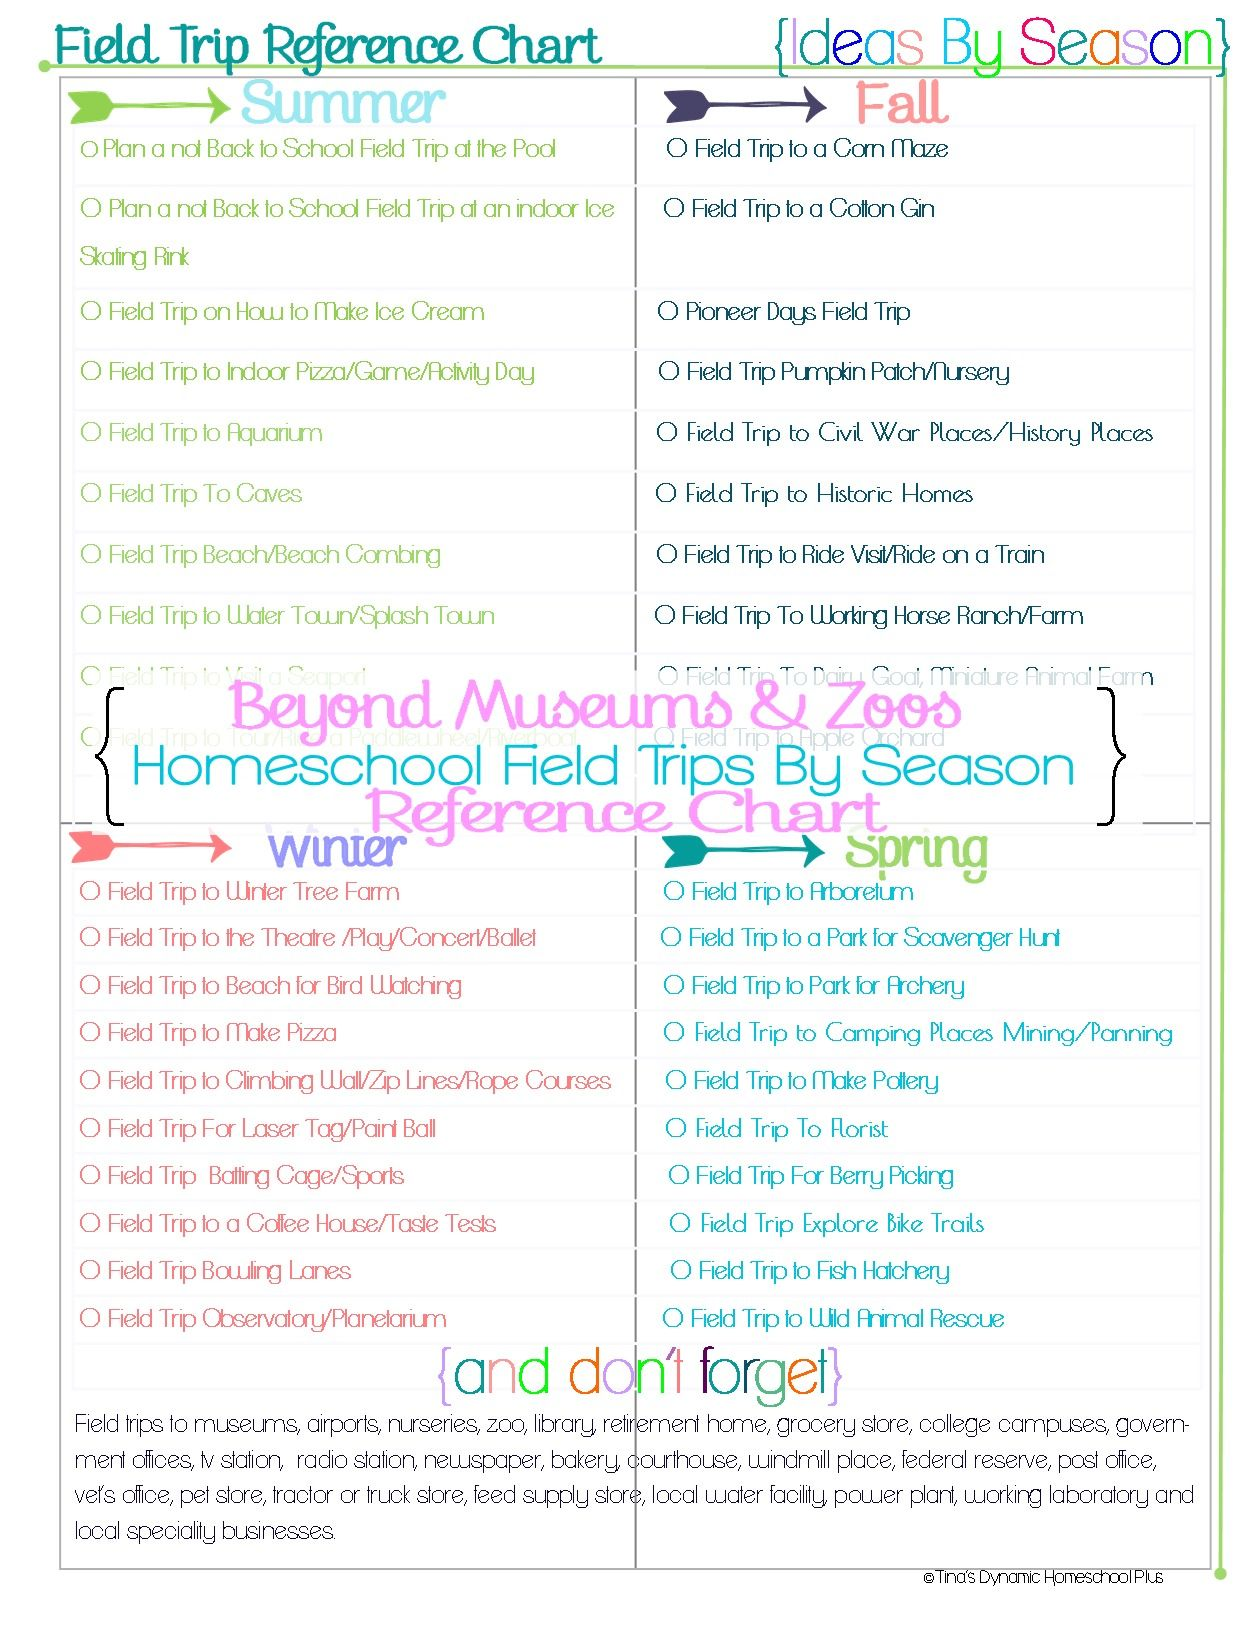 Beyond Museums And Zoos Homeschool Field Trip Form